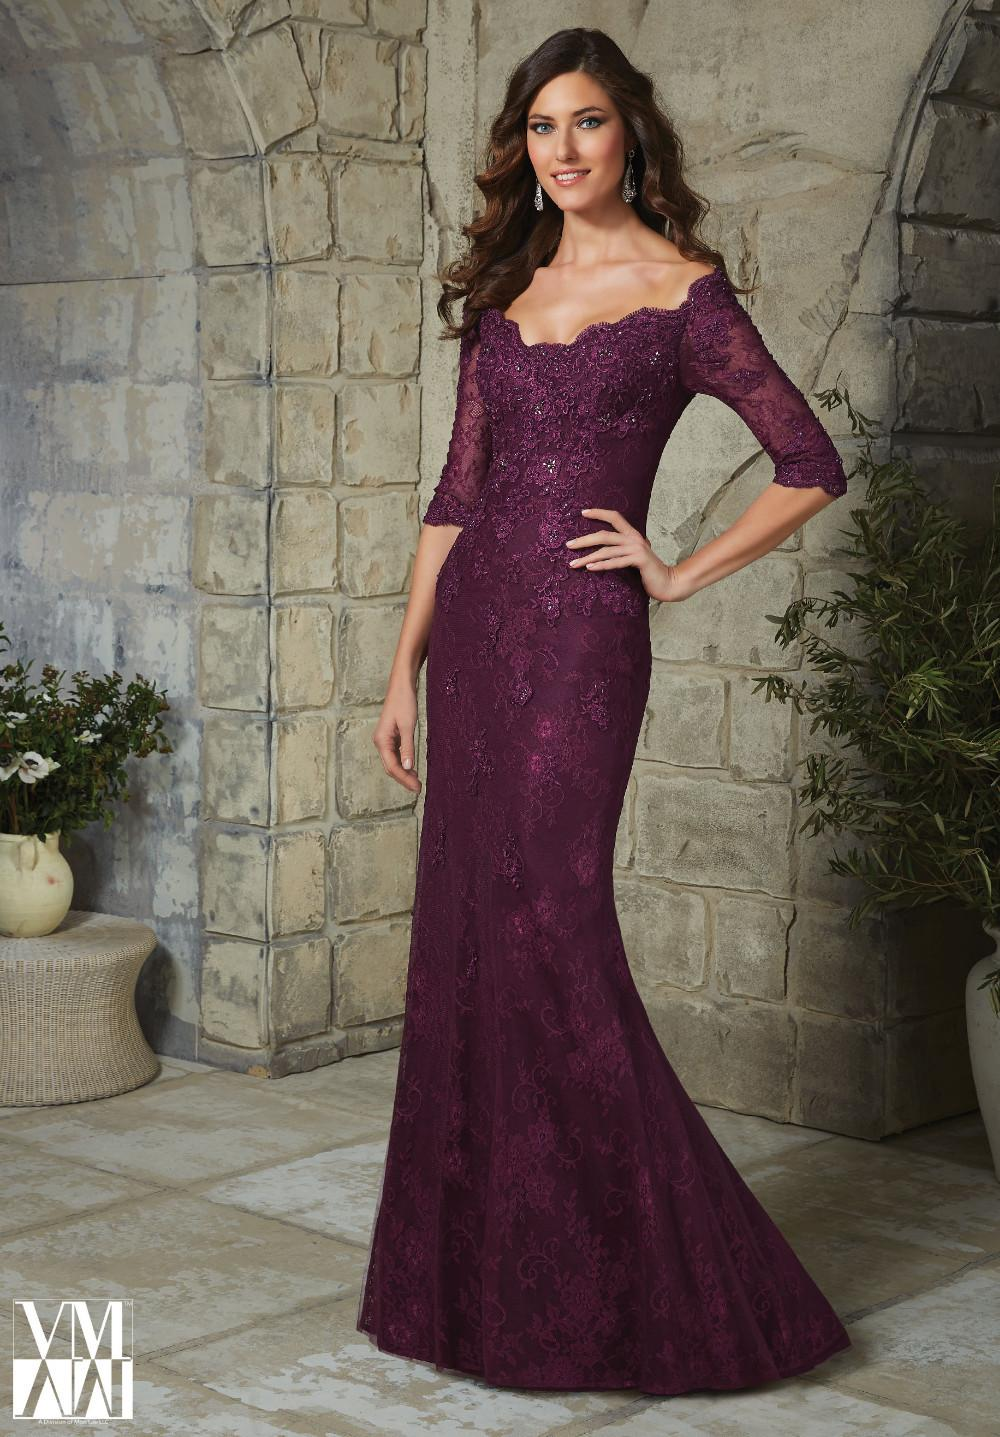 Elegant Plus Size Half Sleeve Plum Lace Mother of the Bride Dresses 2018 for Weddings appliques beading Mermaid Evening Dress